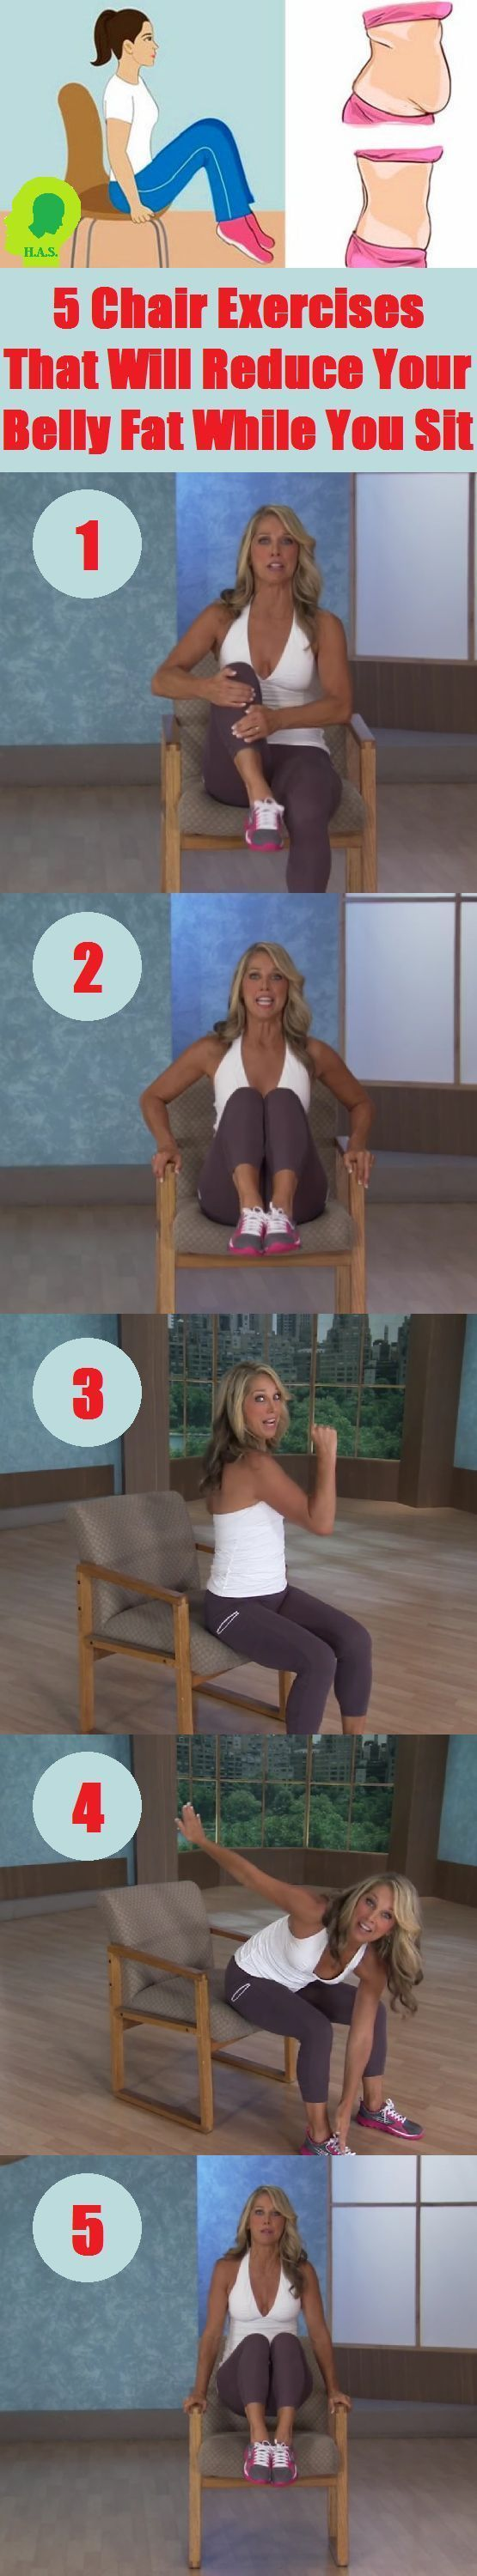 5 Chair Exercises That Will Reduce Your Belly Fat While You Sit